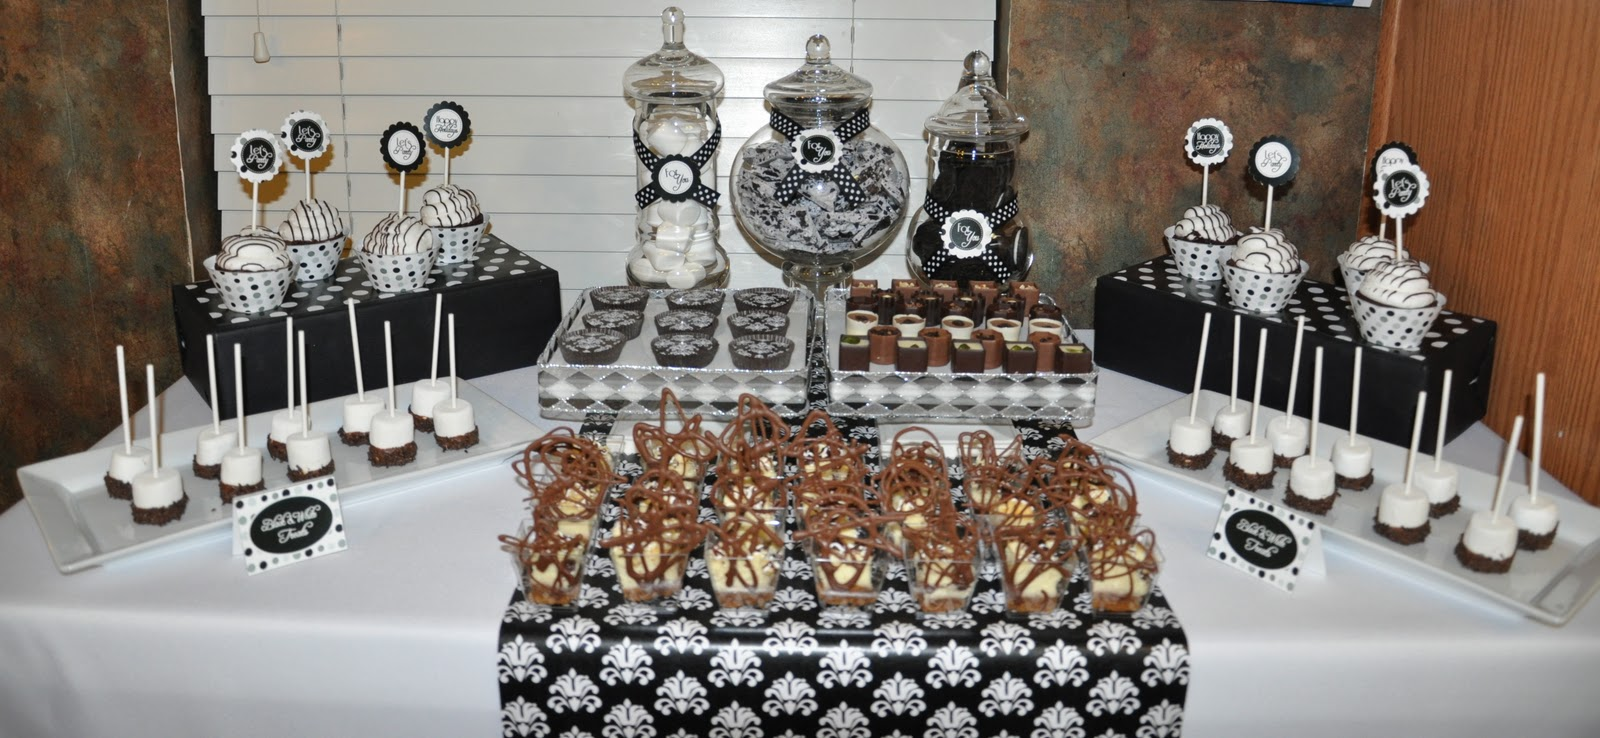 ... to set up a black and white back drop before the guests arrived